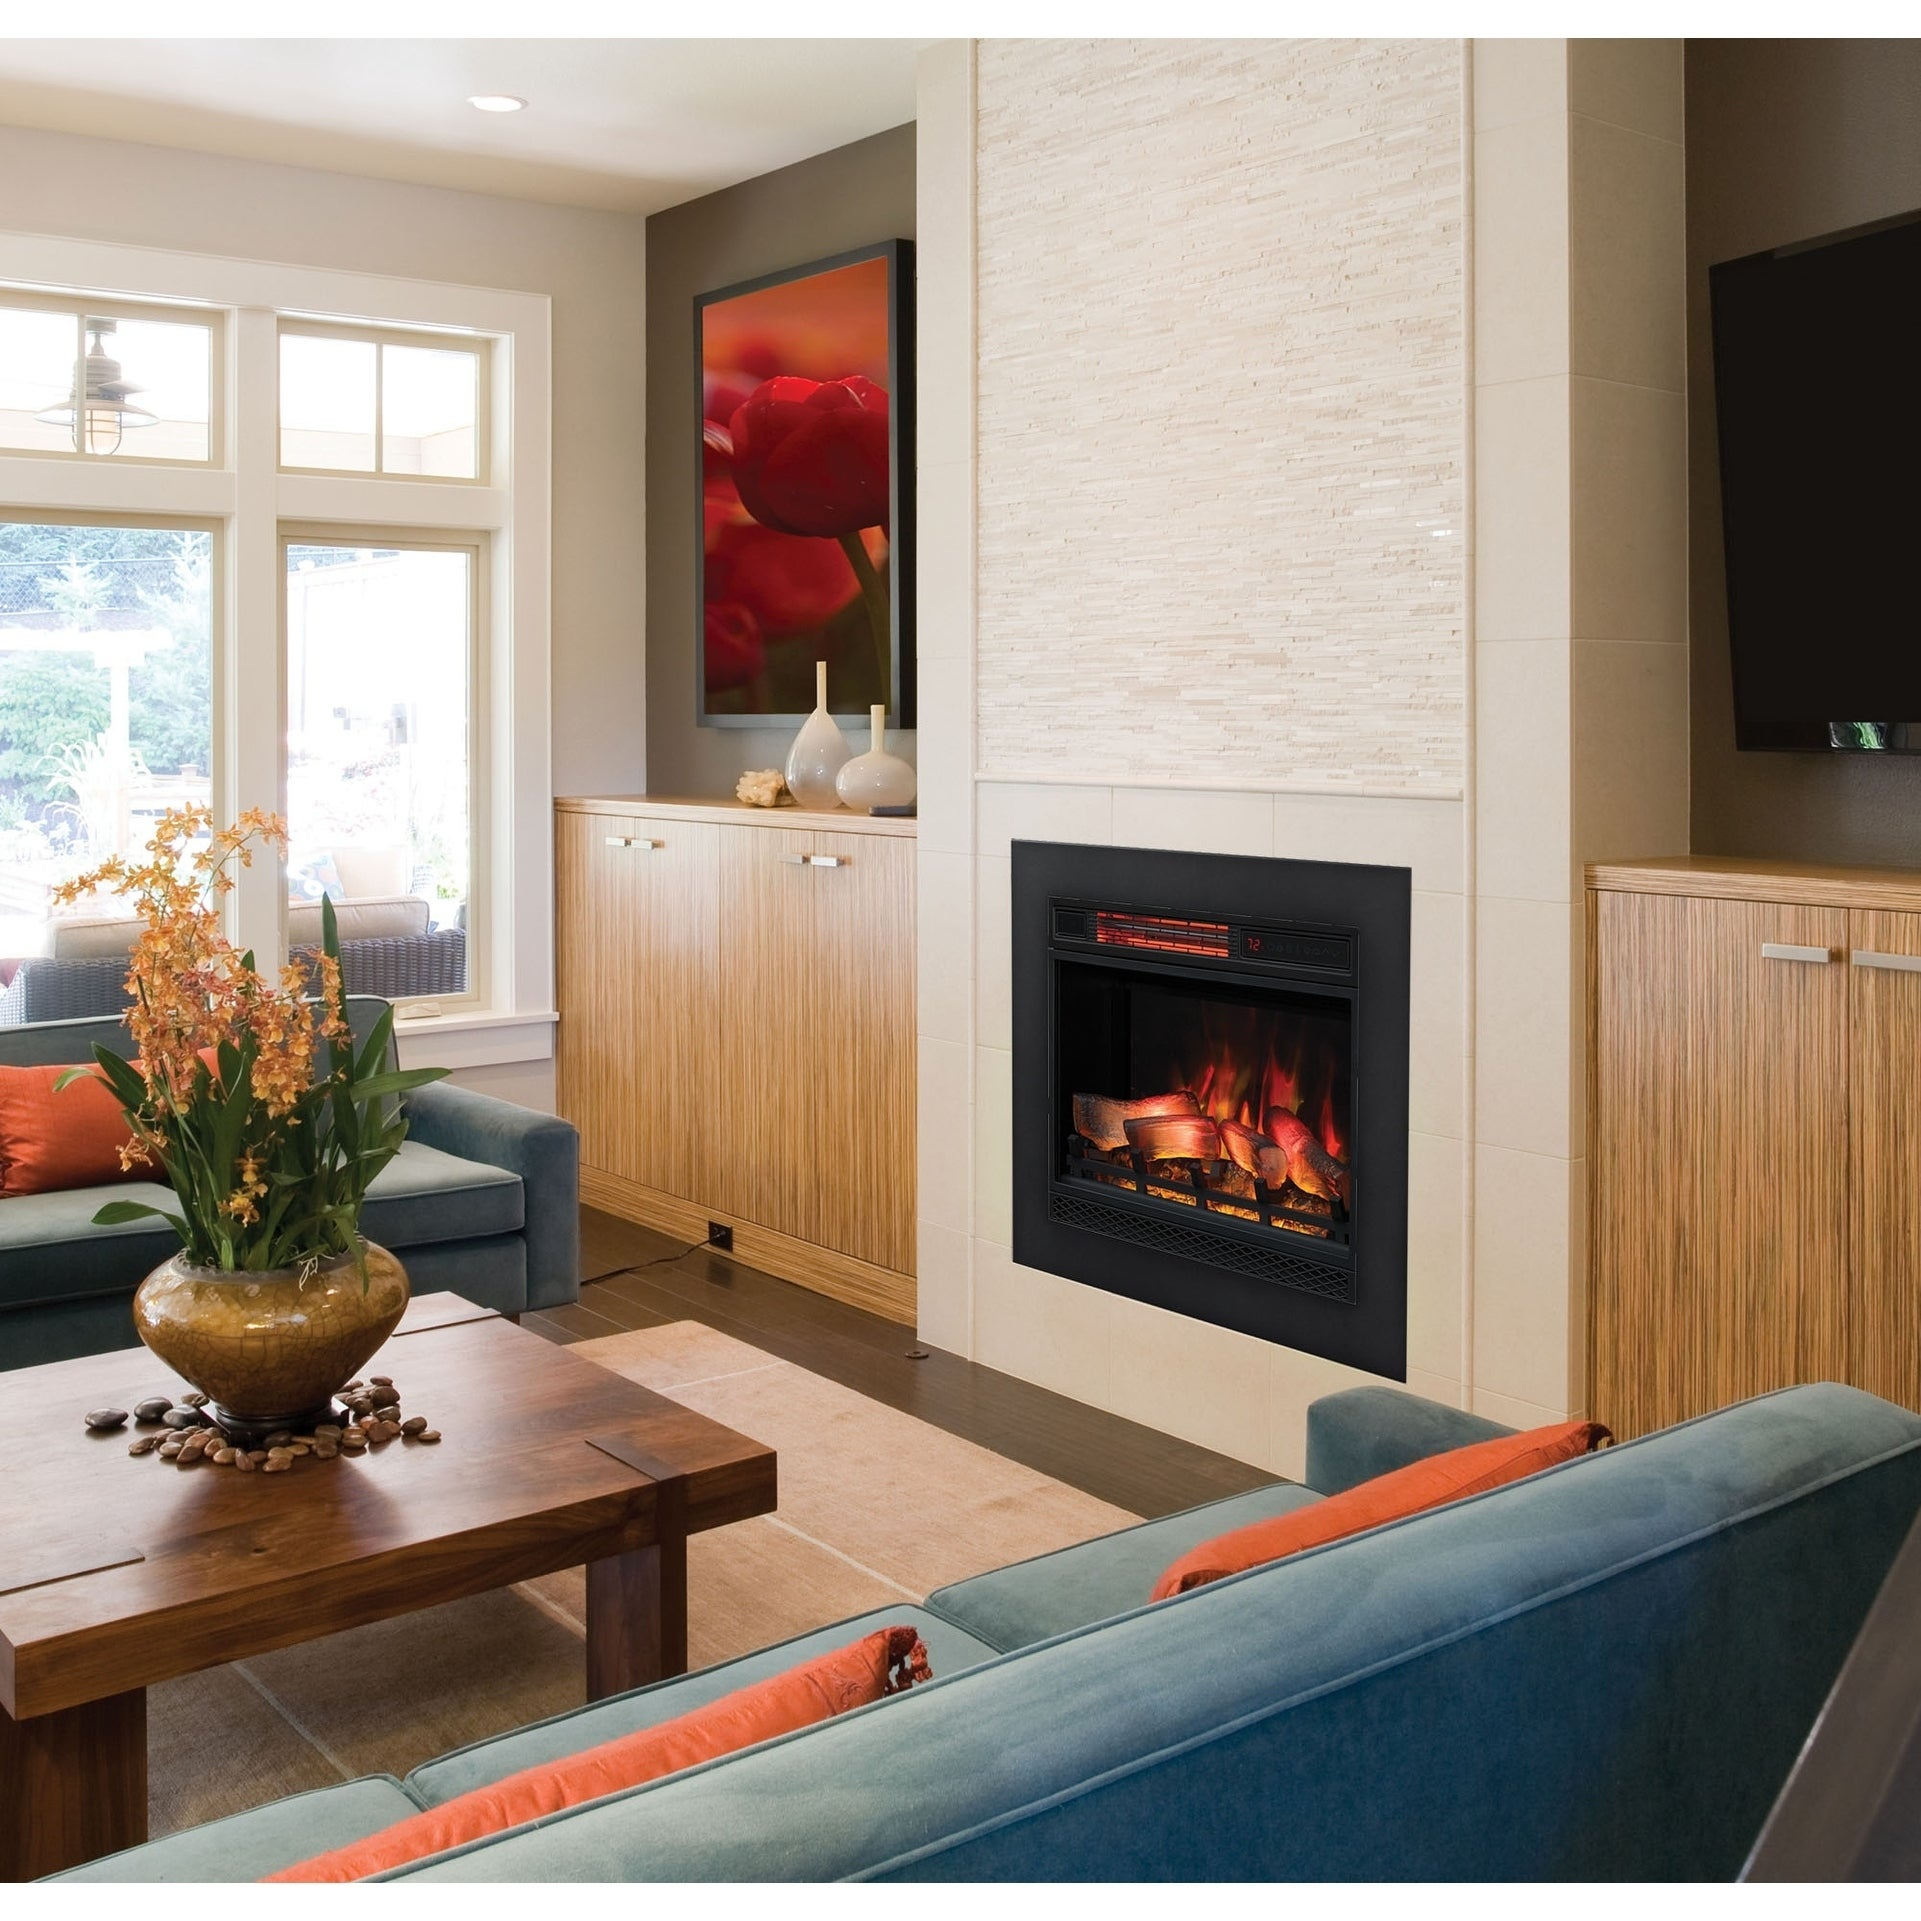 Shop Classicflame 23 3d Infrared Quartz Electric Fireplace Insert On Sale Overstock 21256177